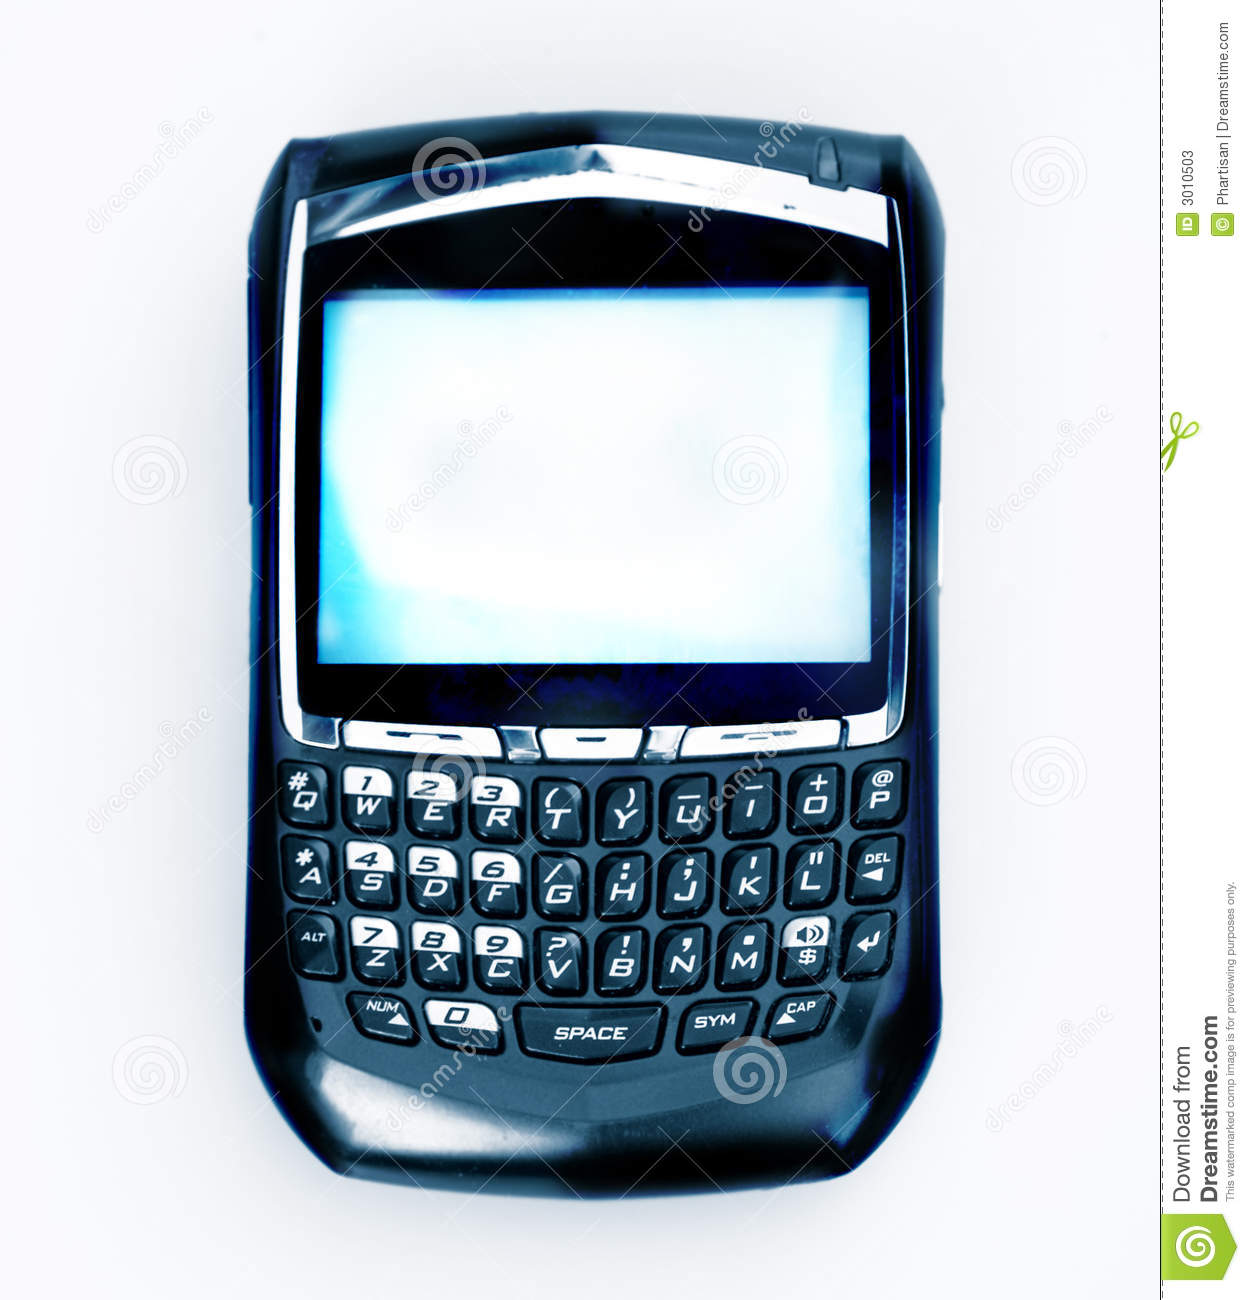 Cell Phone & Email Organizer Stock Image